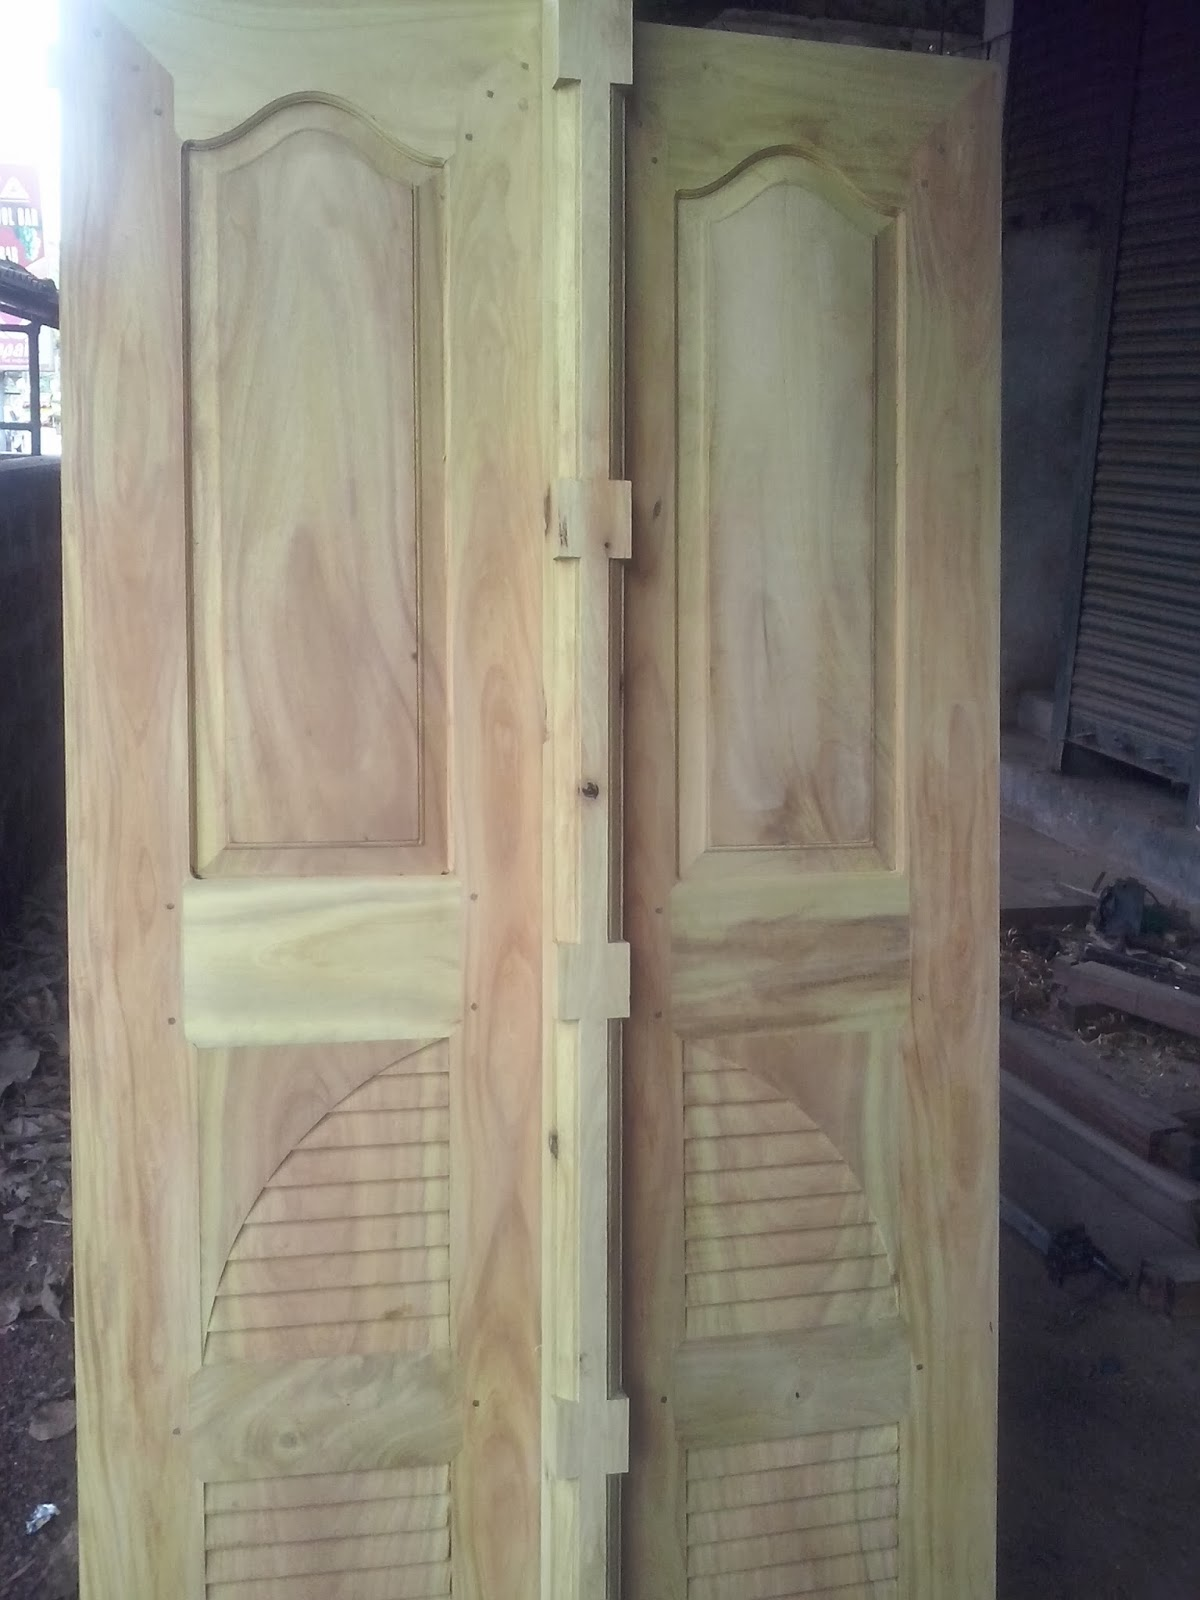 Bavas wood works main entrance wooden double door designs for Double door designs for main door